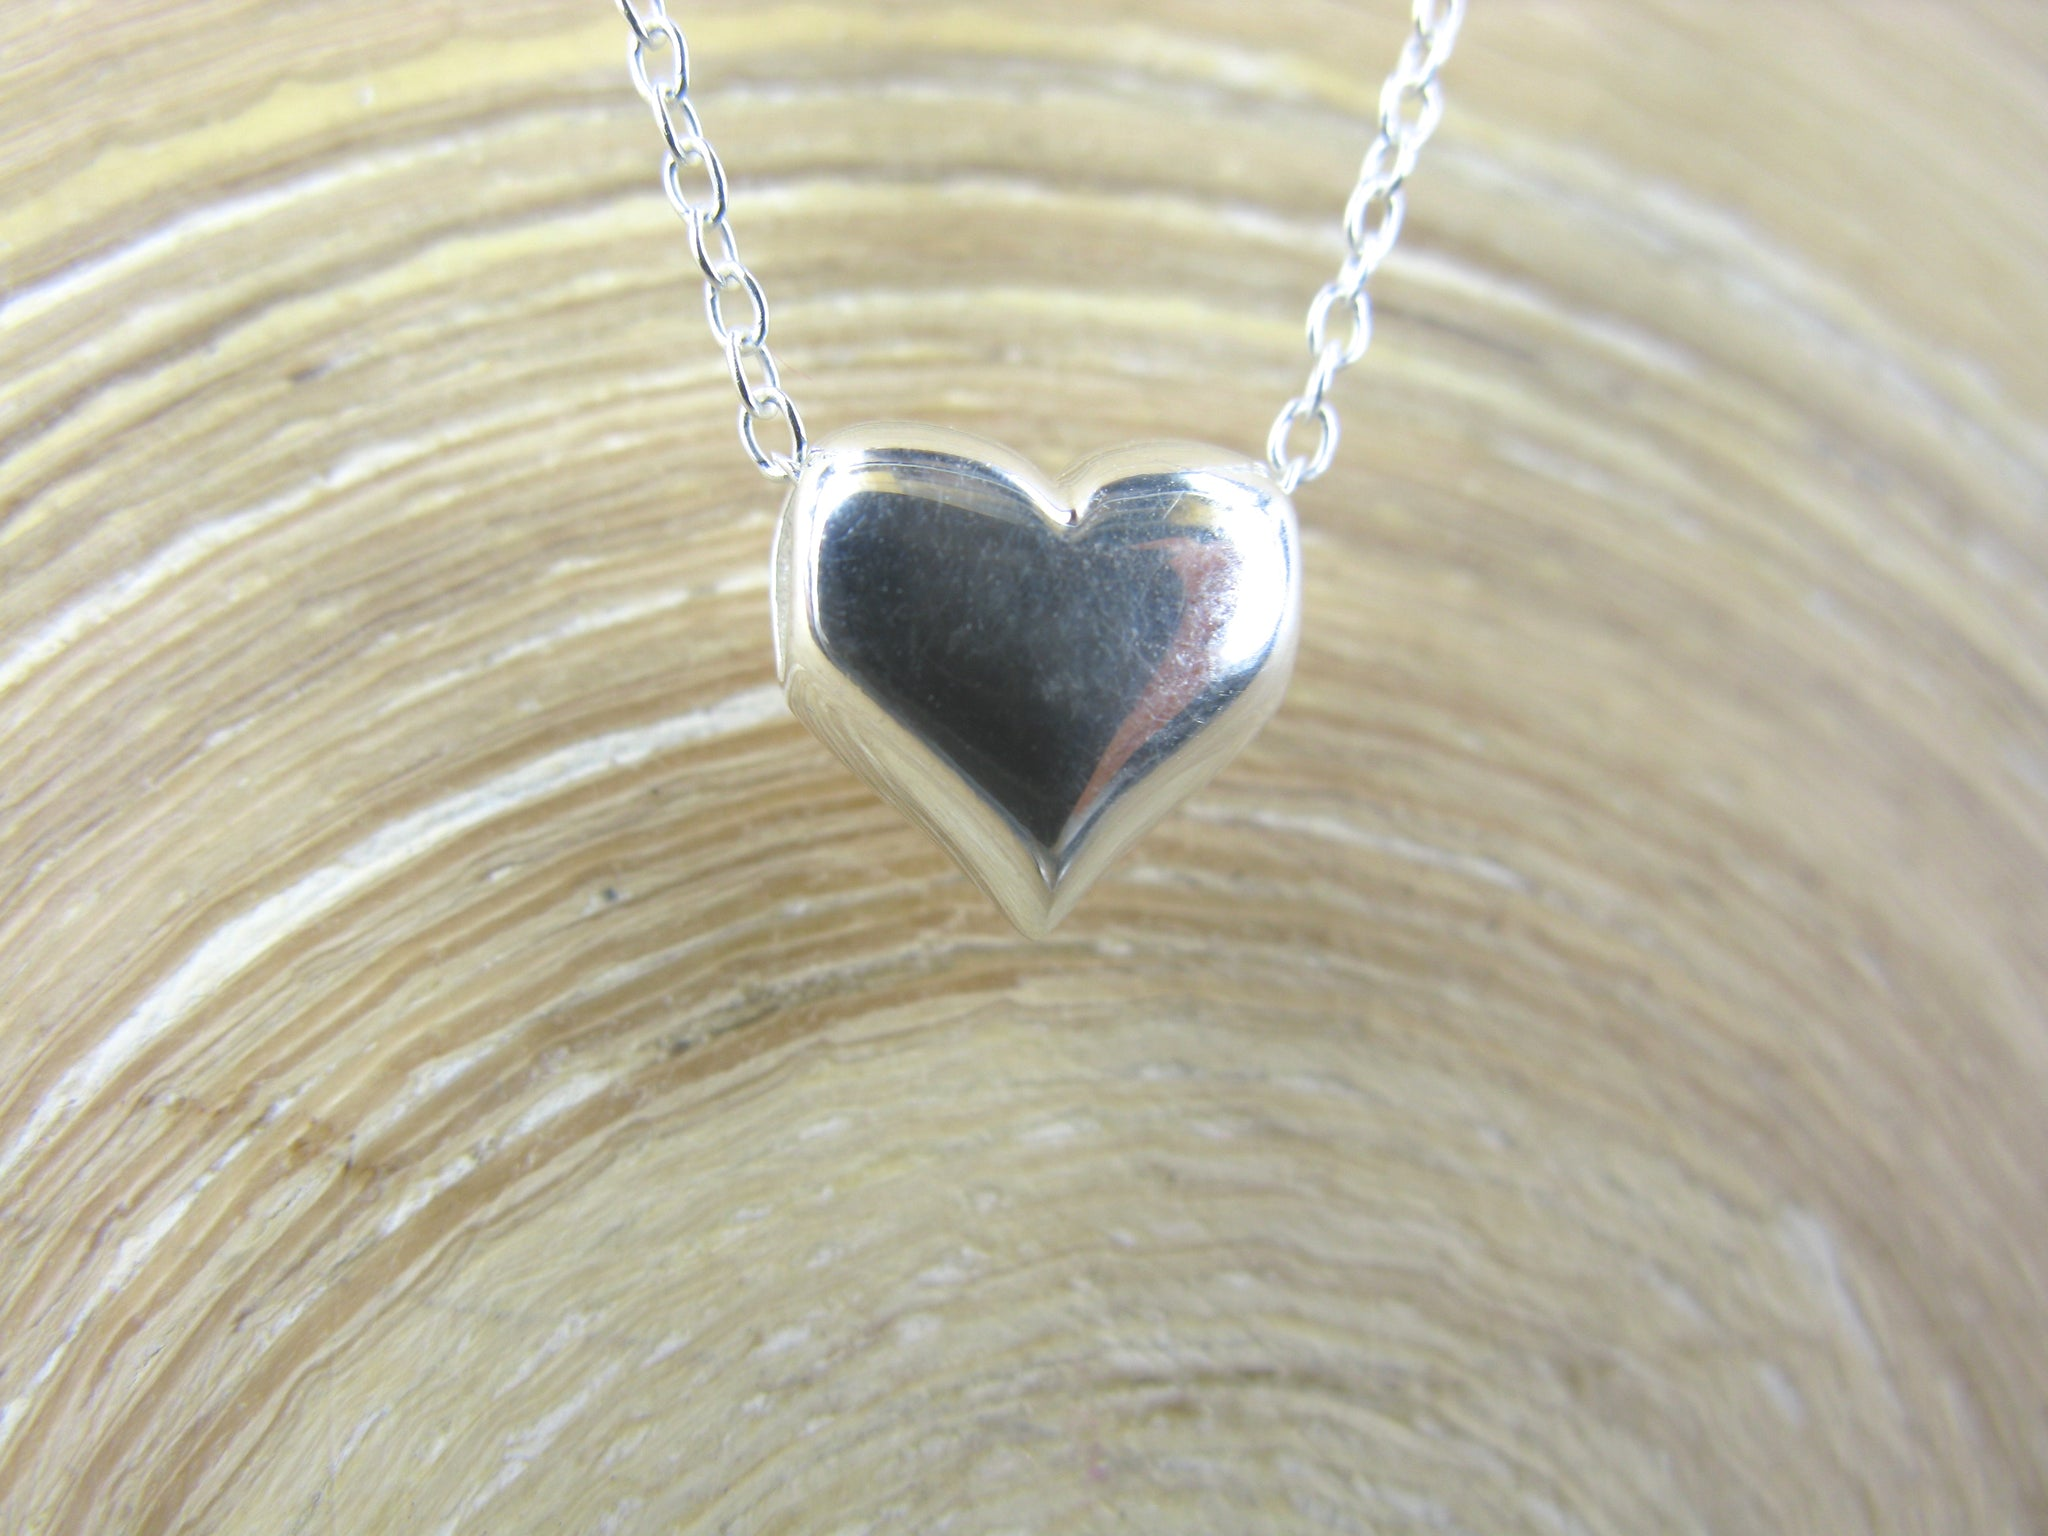 3D Heart Pendant Necklace in 925 Sterling Silver